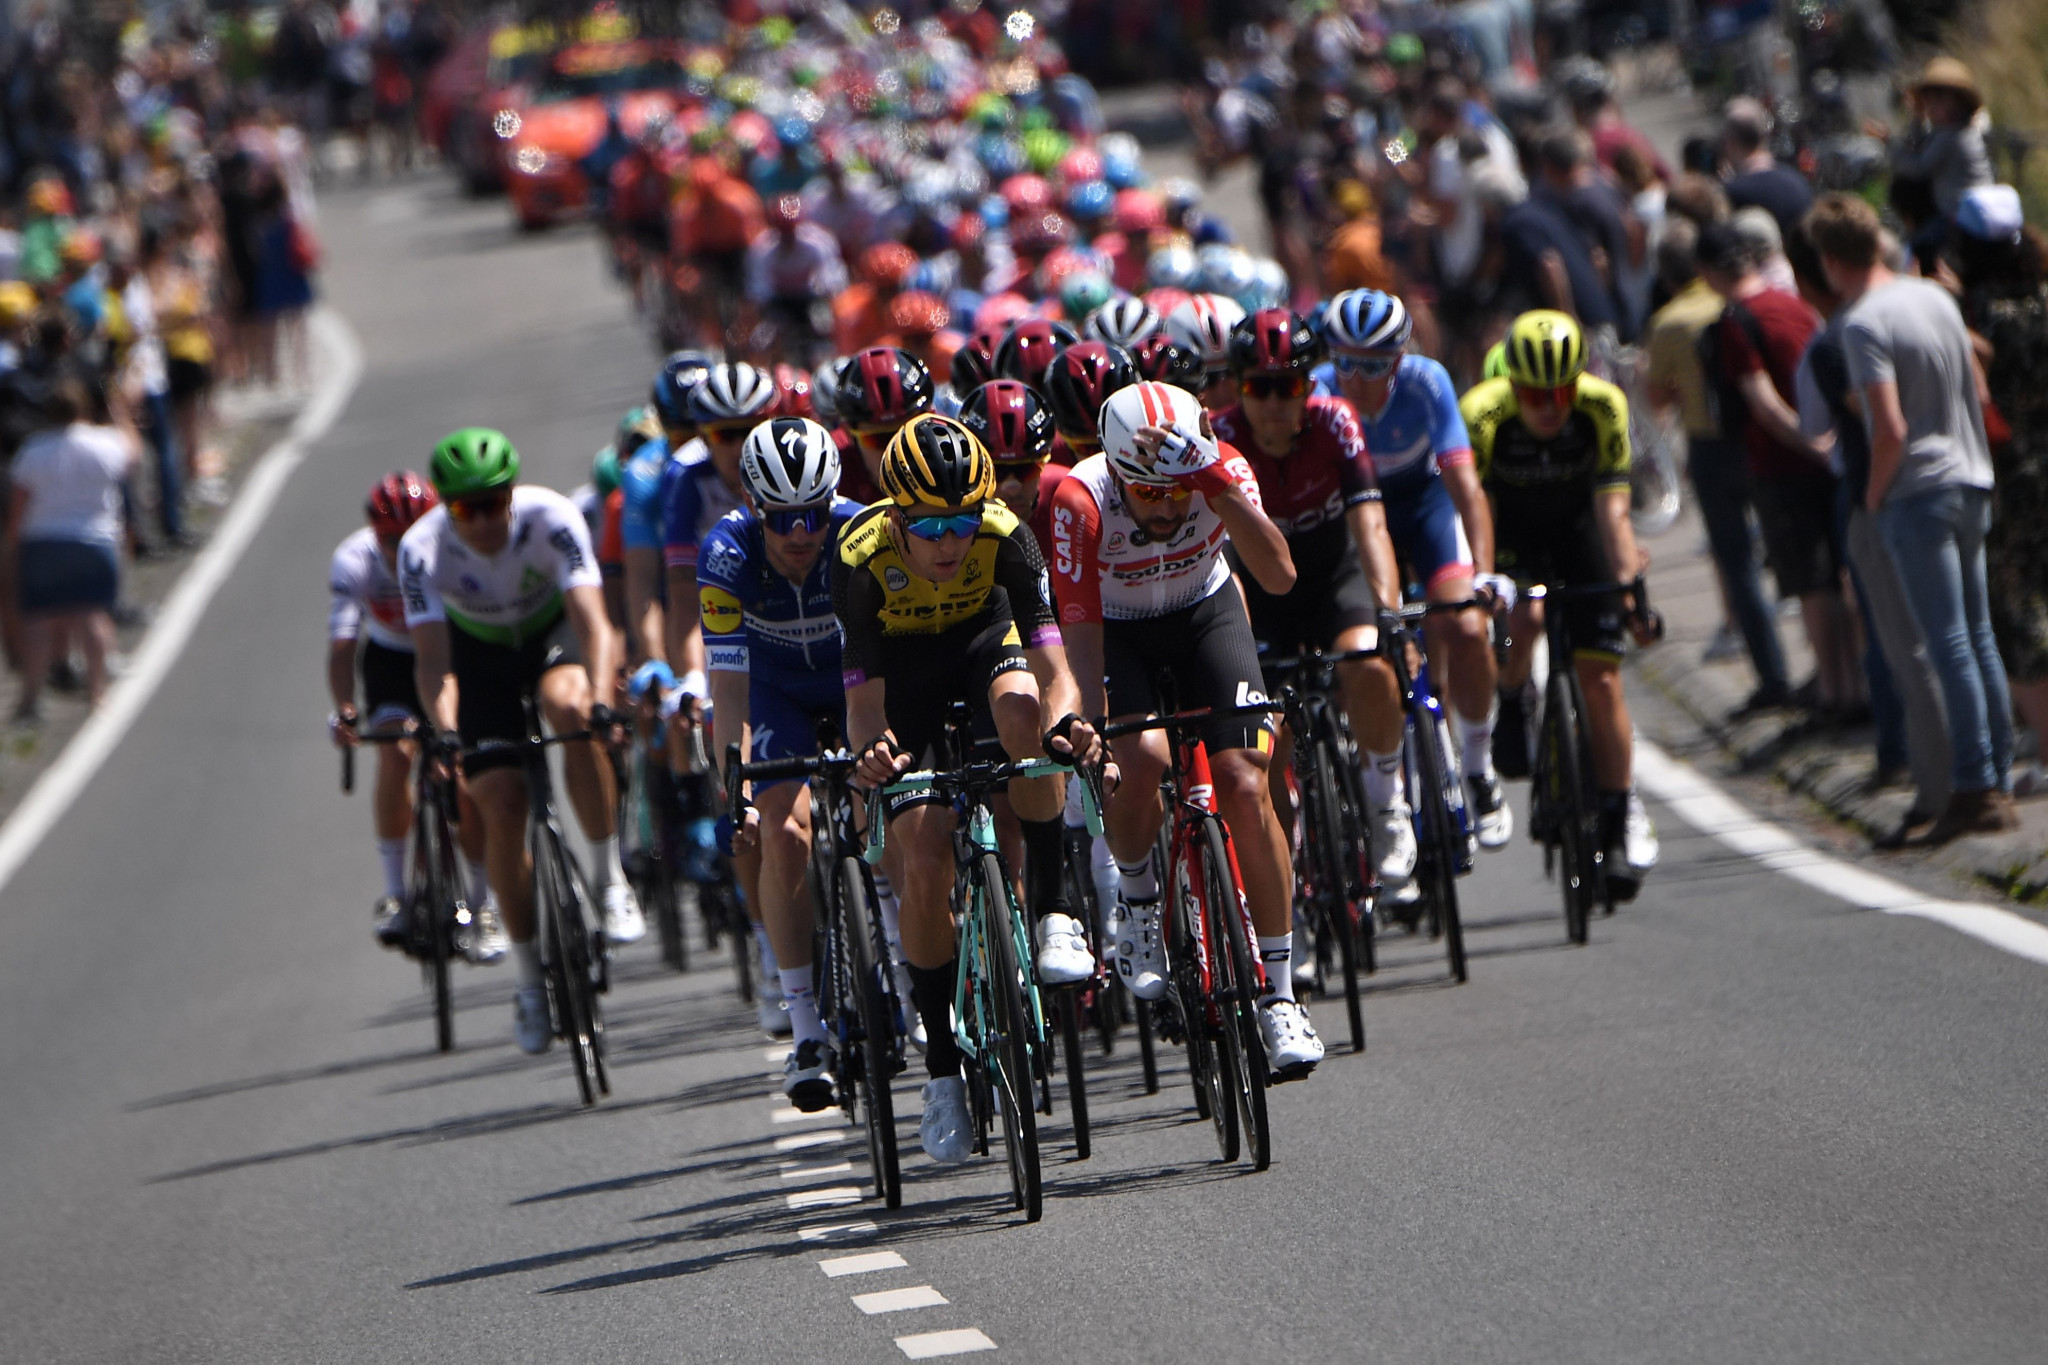 Denmark to host Tour de France start in 2022 following coronavirus-enforced date change